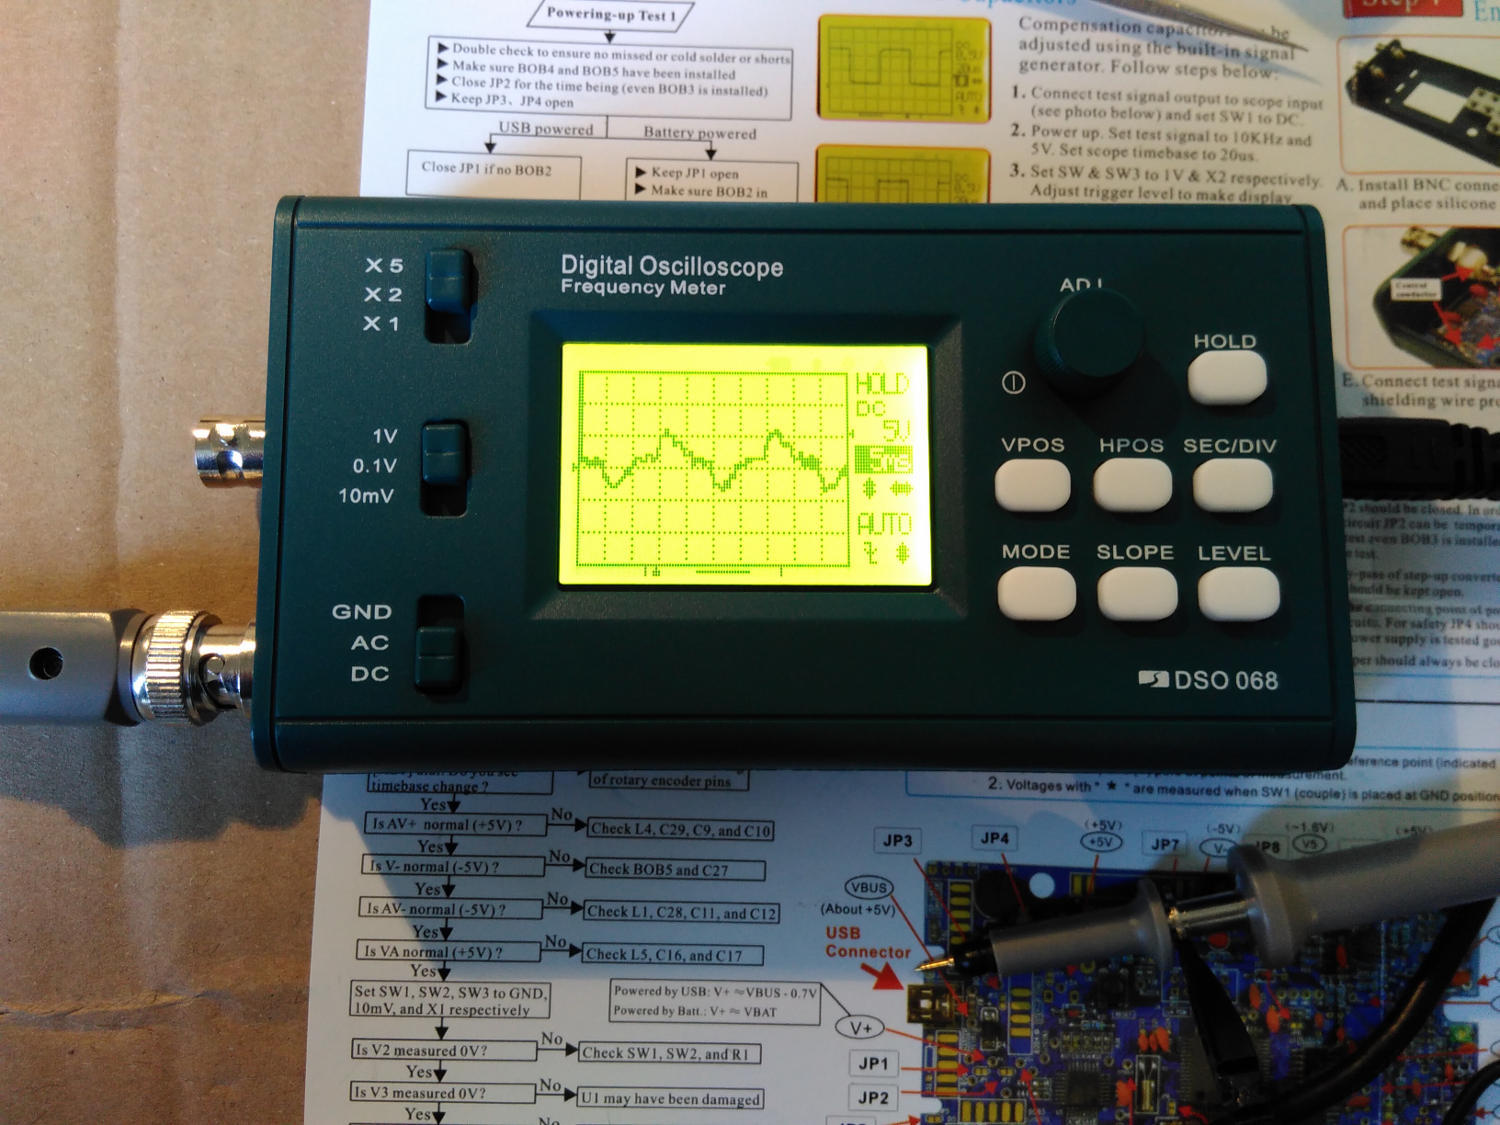 The finished oscilloscope, displaying mains hum at 50 Hz